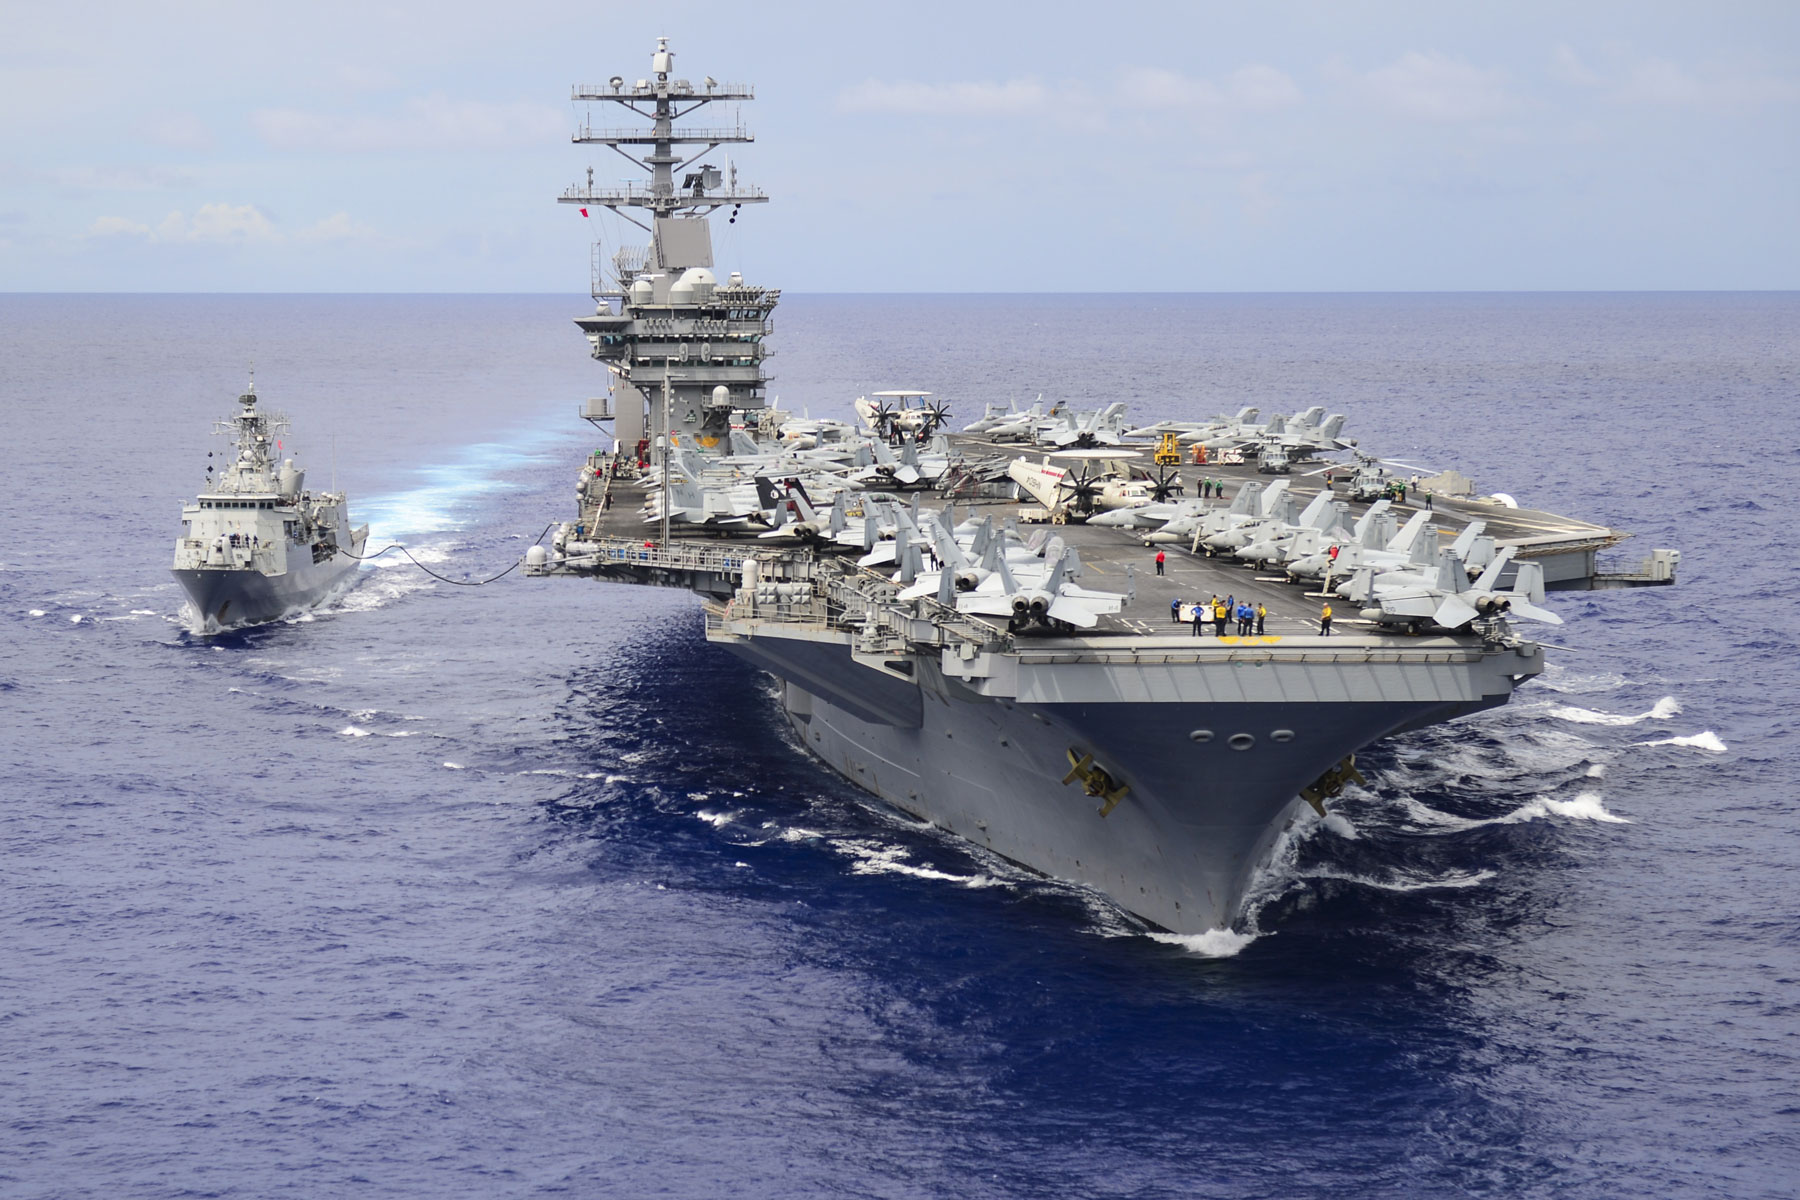 Navy Extends Uss Nimitz Stay In Middle East Military Com